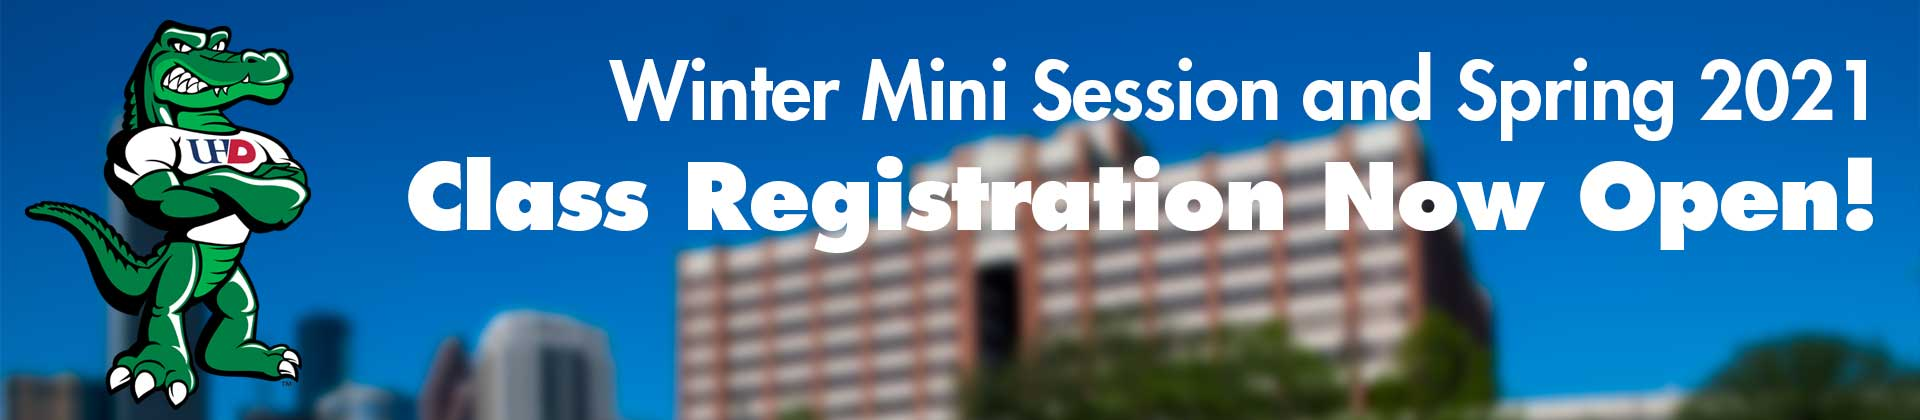 Winter Mini Session and Spring 2021 Class Registration Now Open!